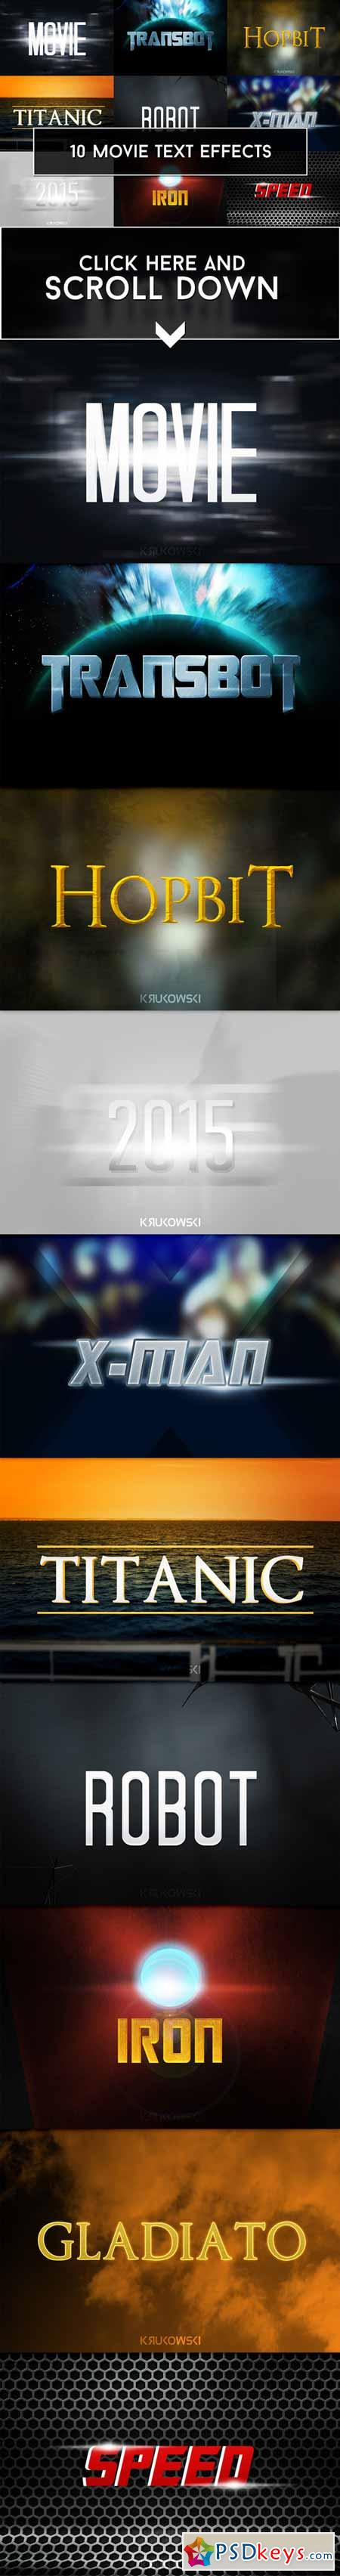 Movie Text Effects 265114 » Free Download Photoshop Vector